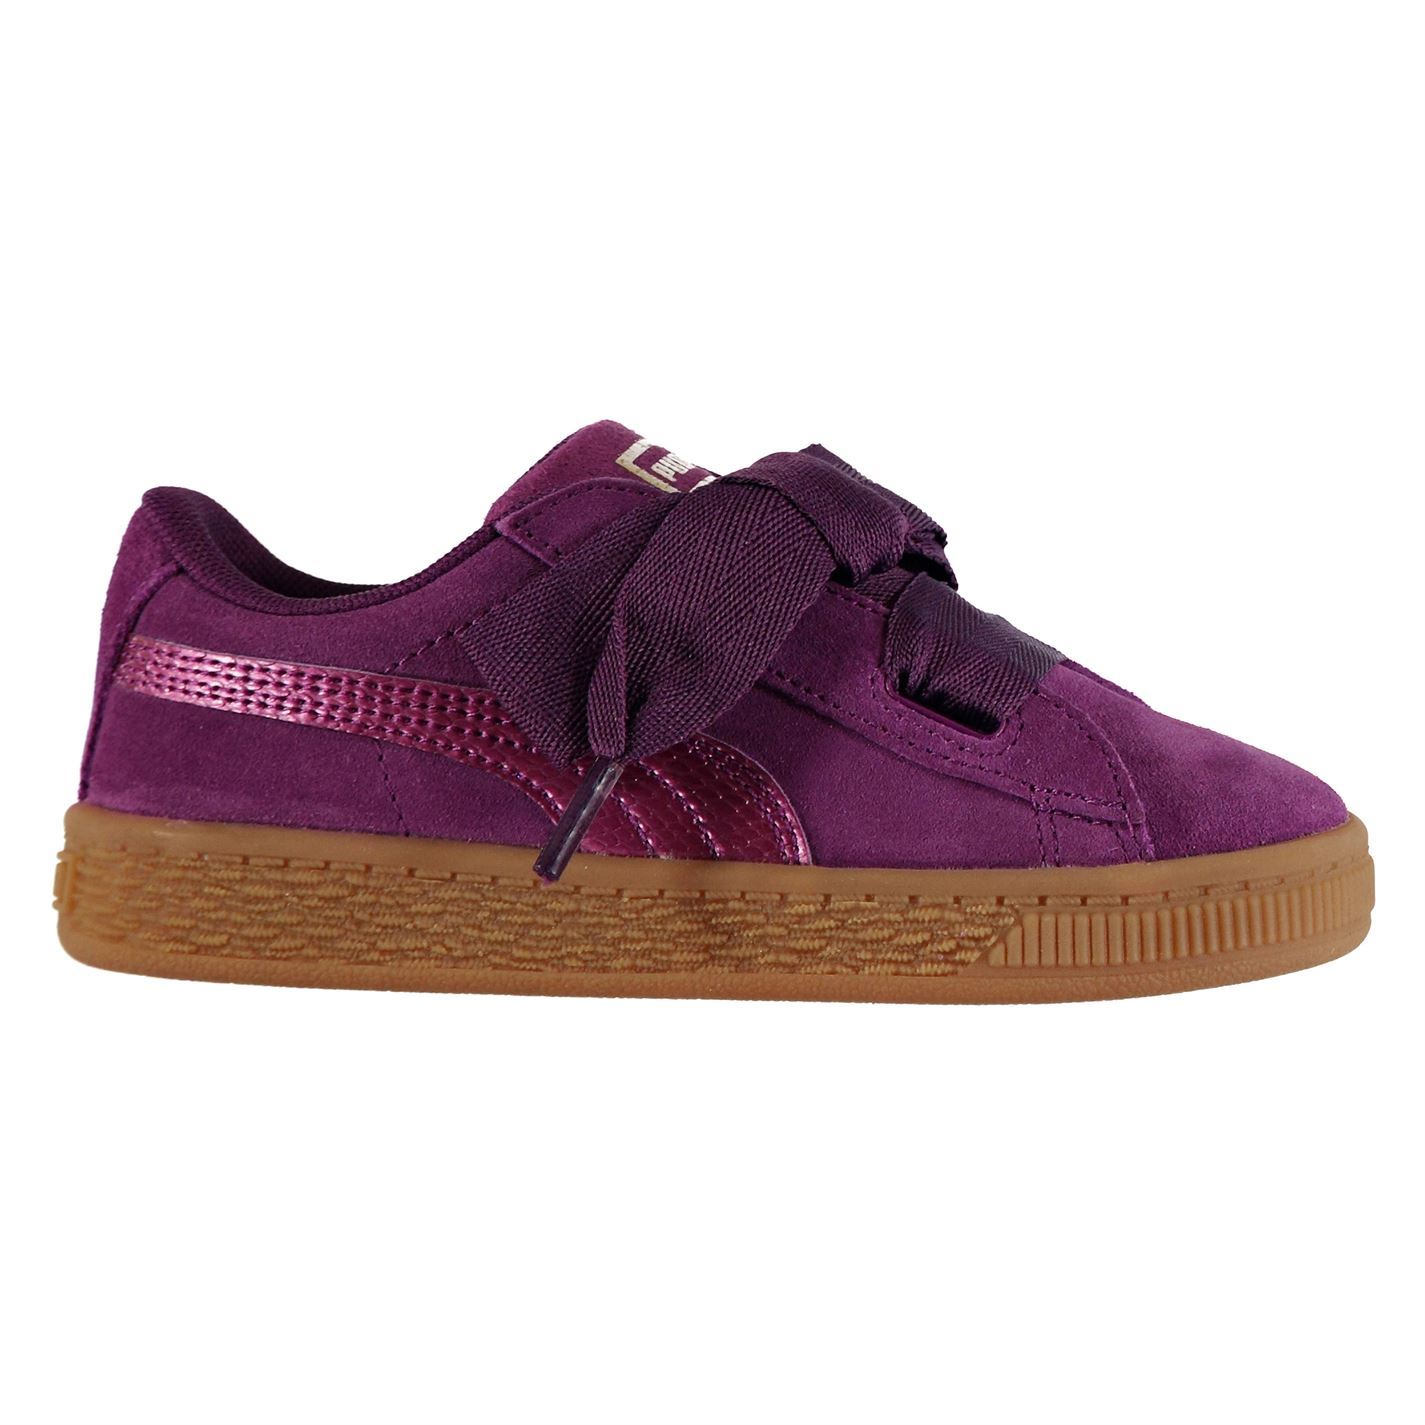 fab7acc794a ... Puma Suede coeur formateurs filles chaussures chaussures